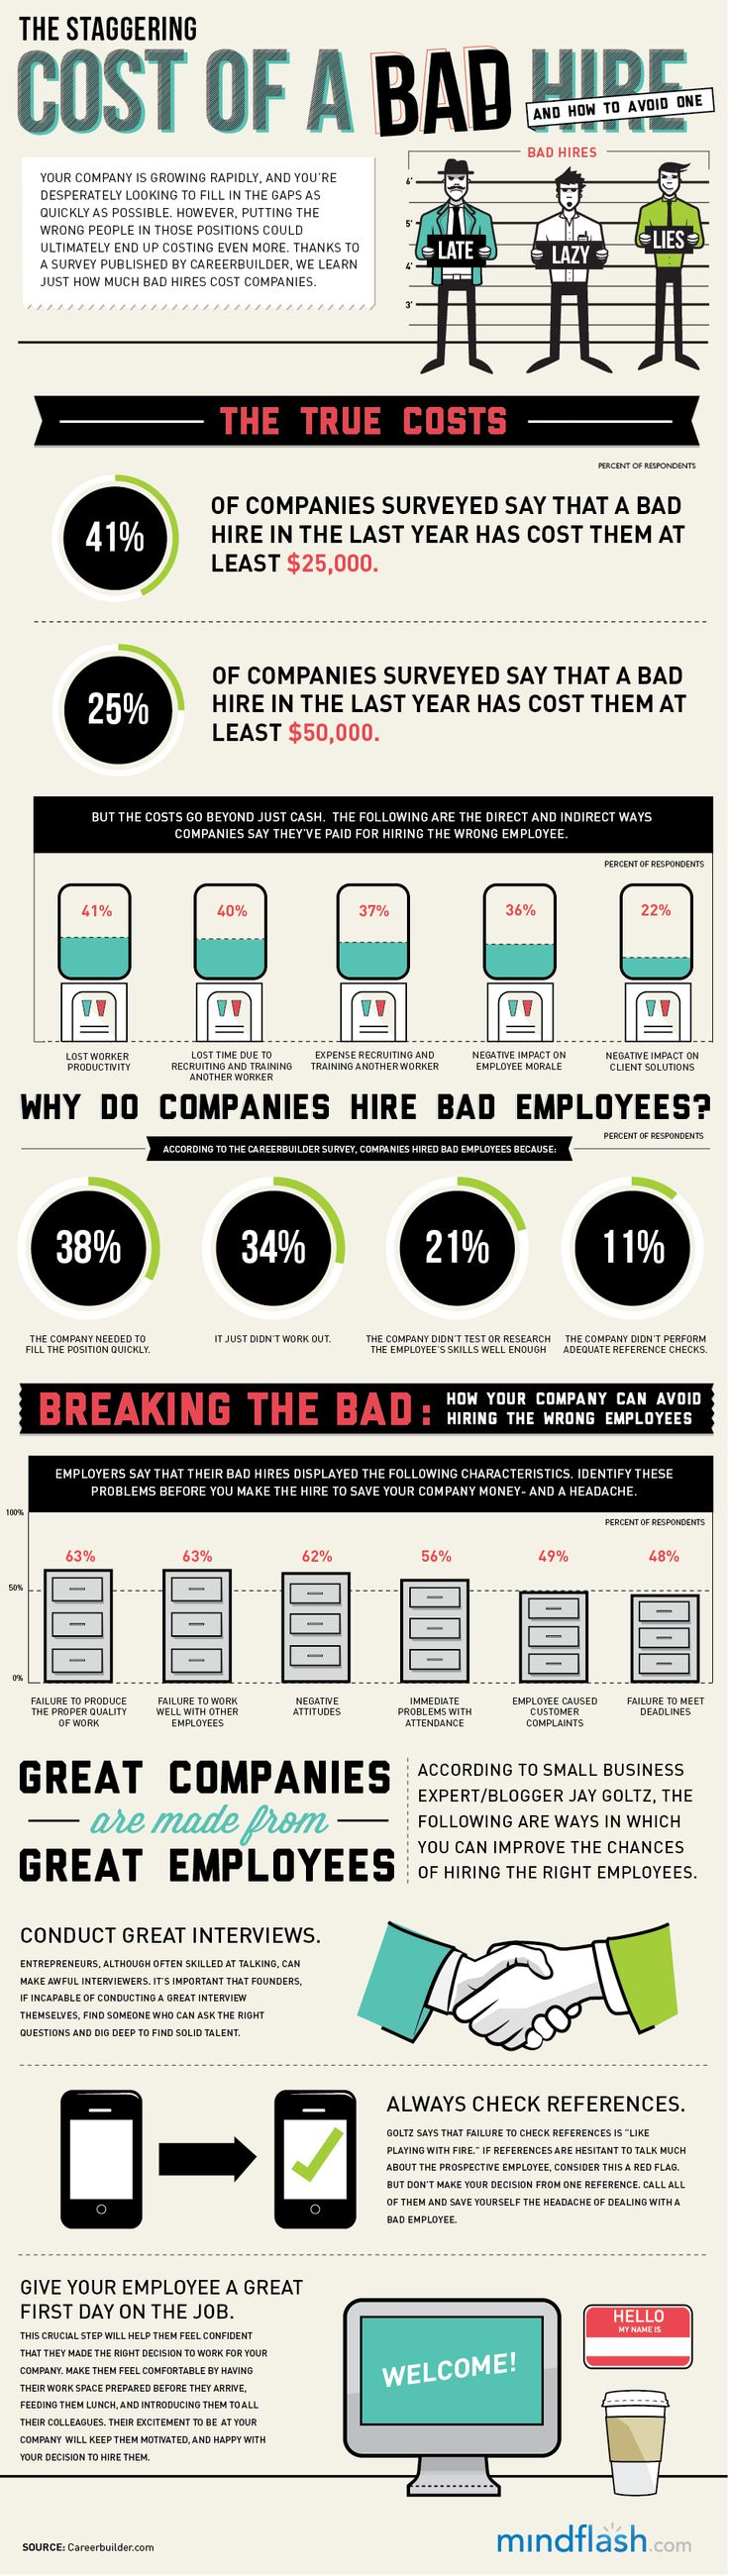 The staggering cost of a bad hire (infographic)